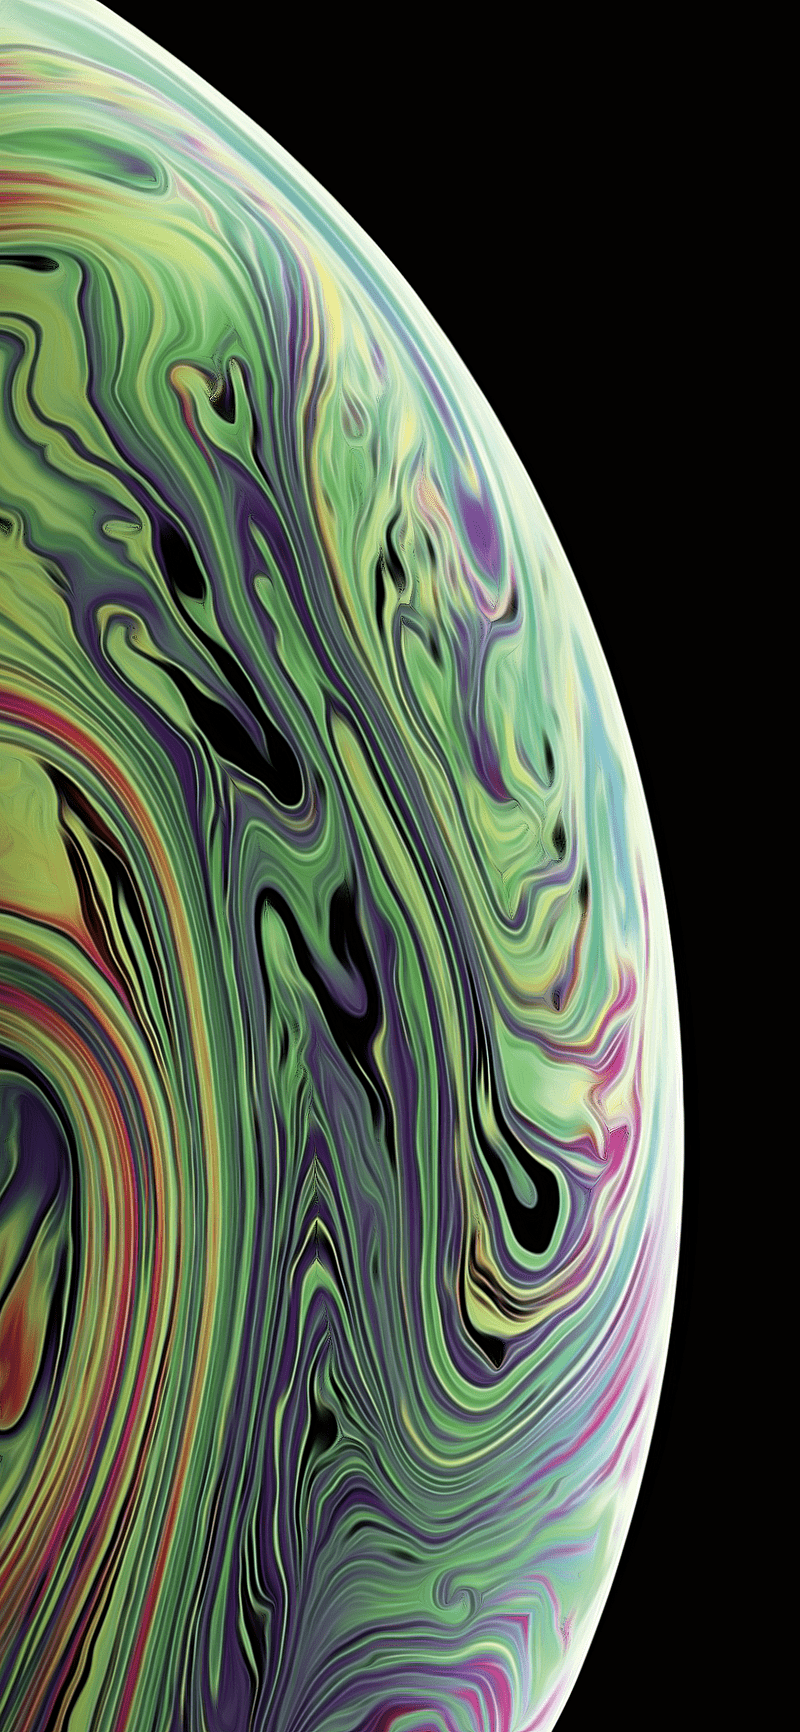 Download Original iPhone XS Max, XS and XR Wallpapers in